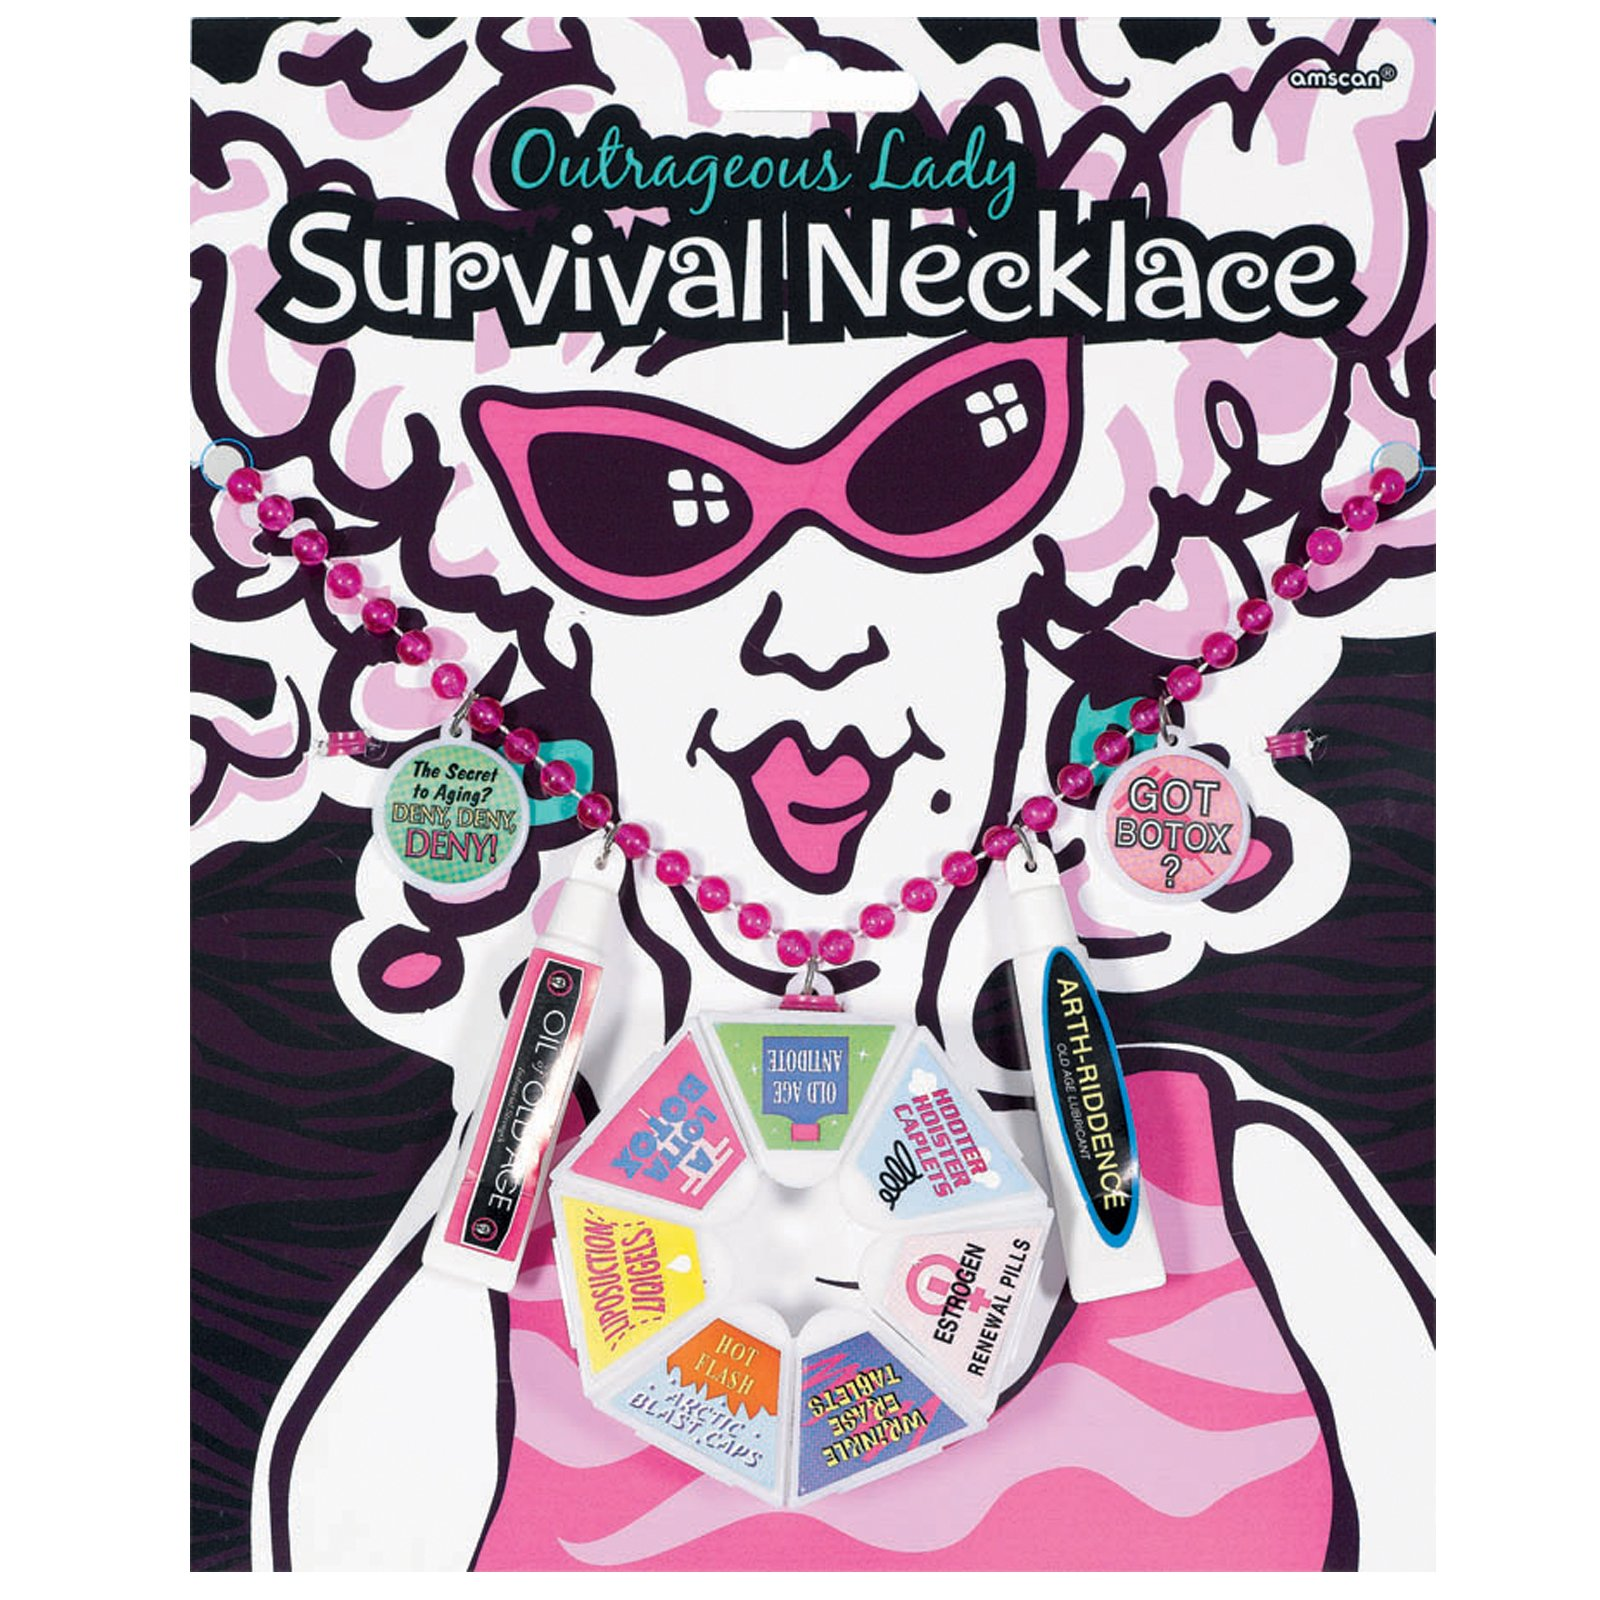 Over the Hill Lady Survival Necklace